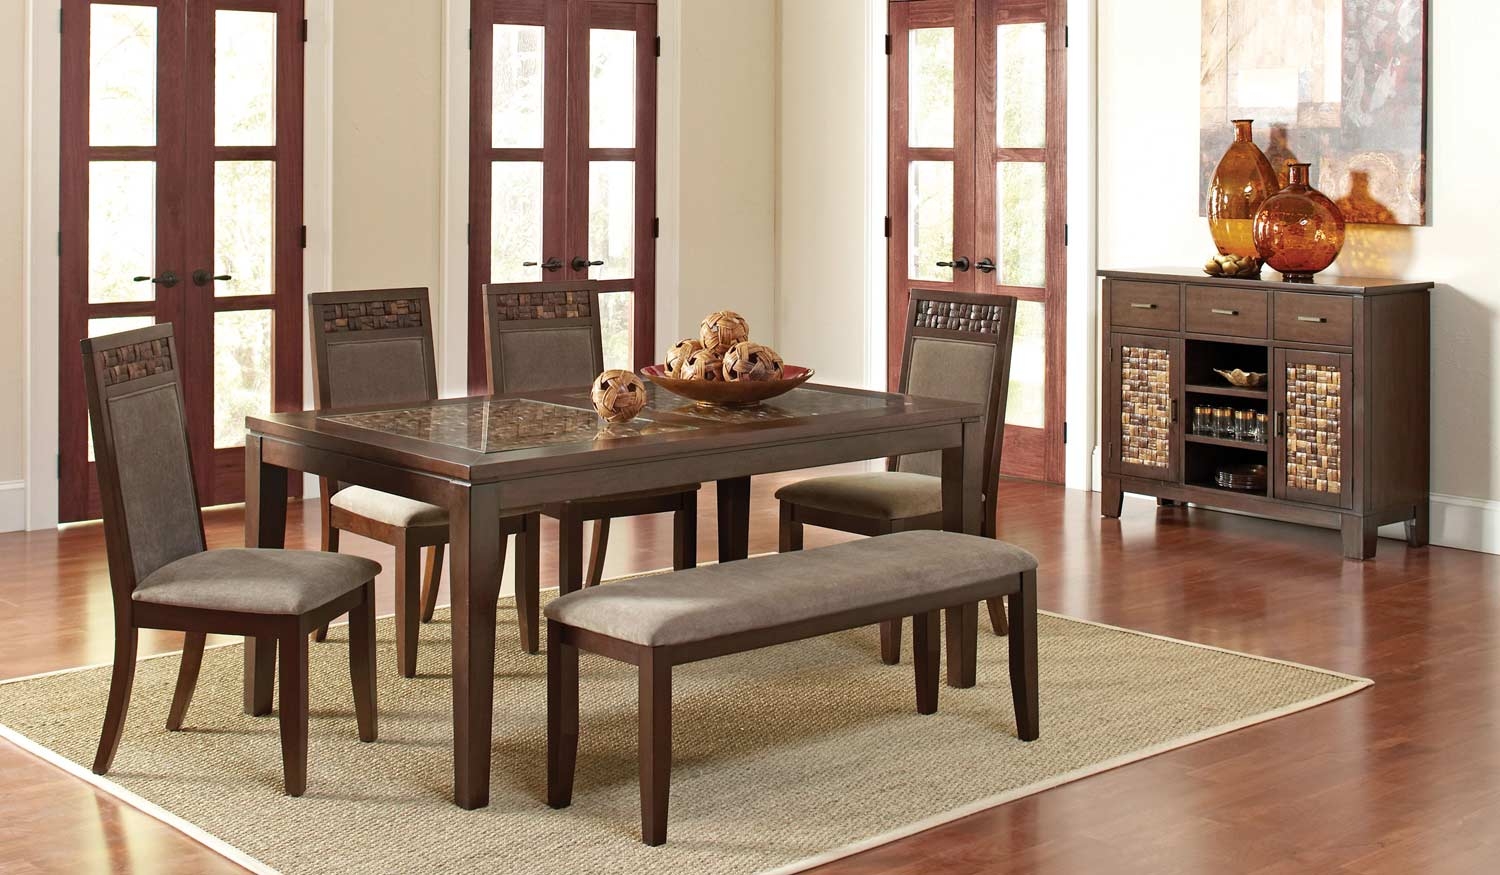 Coaster Trinidad Dining Set - Medium Brown